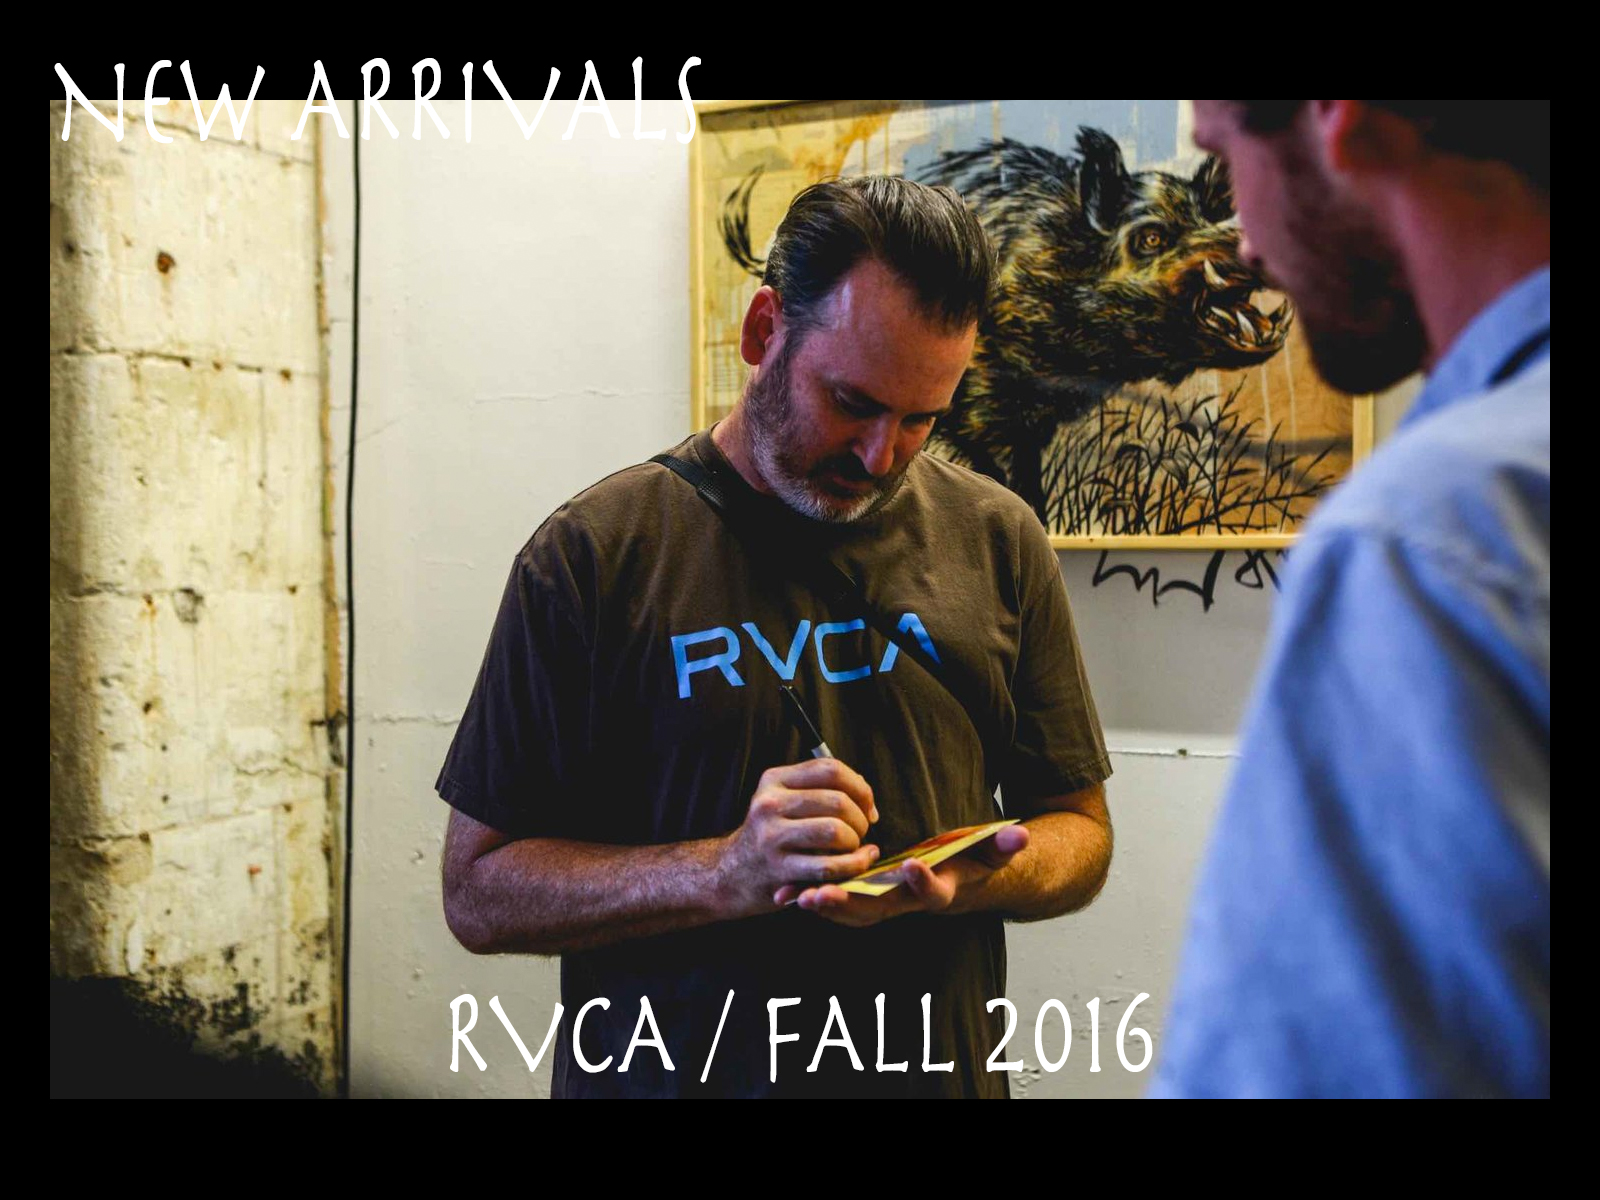 NEW ARRIVALS – RVCA FALL 2016